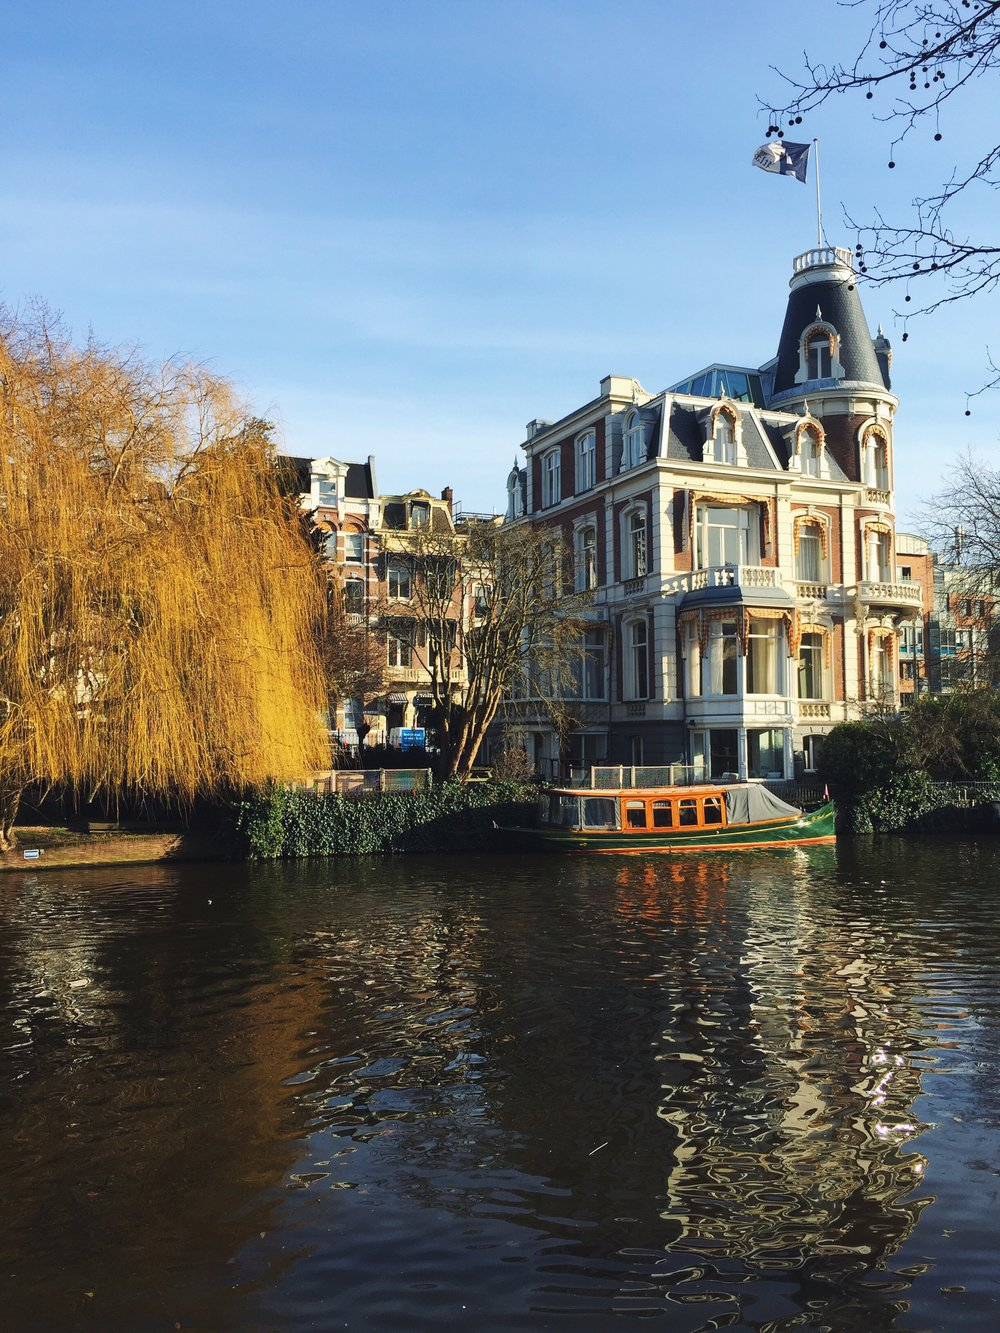 Amsterdam is such a gorgeous city, with magnificent architecture, canals, and boats at every corner. Get a bike, and just get lost!